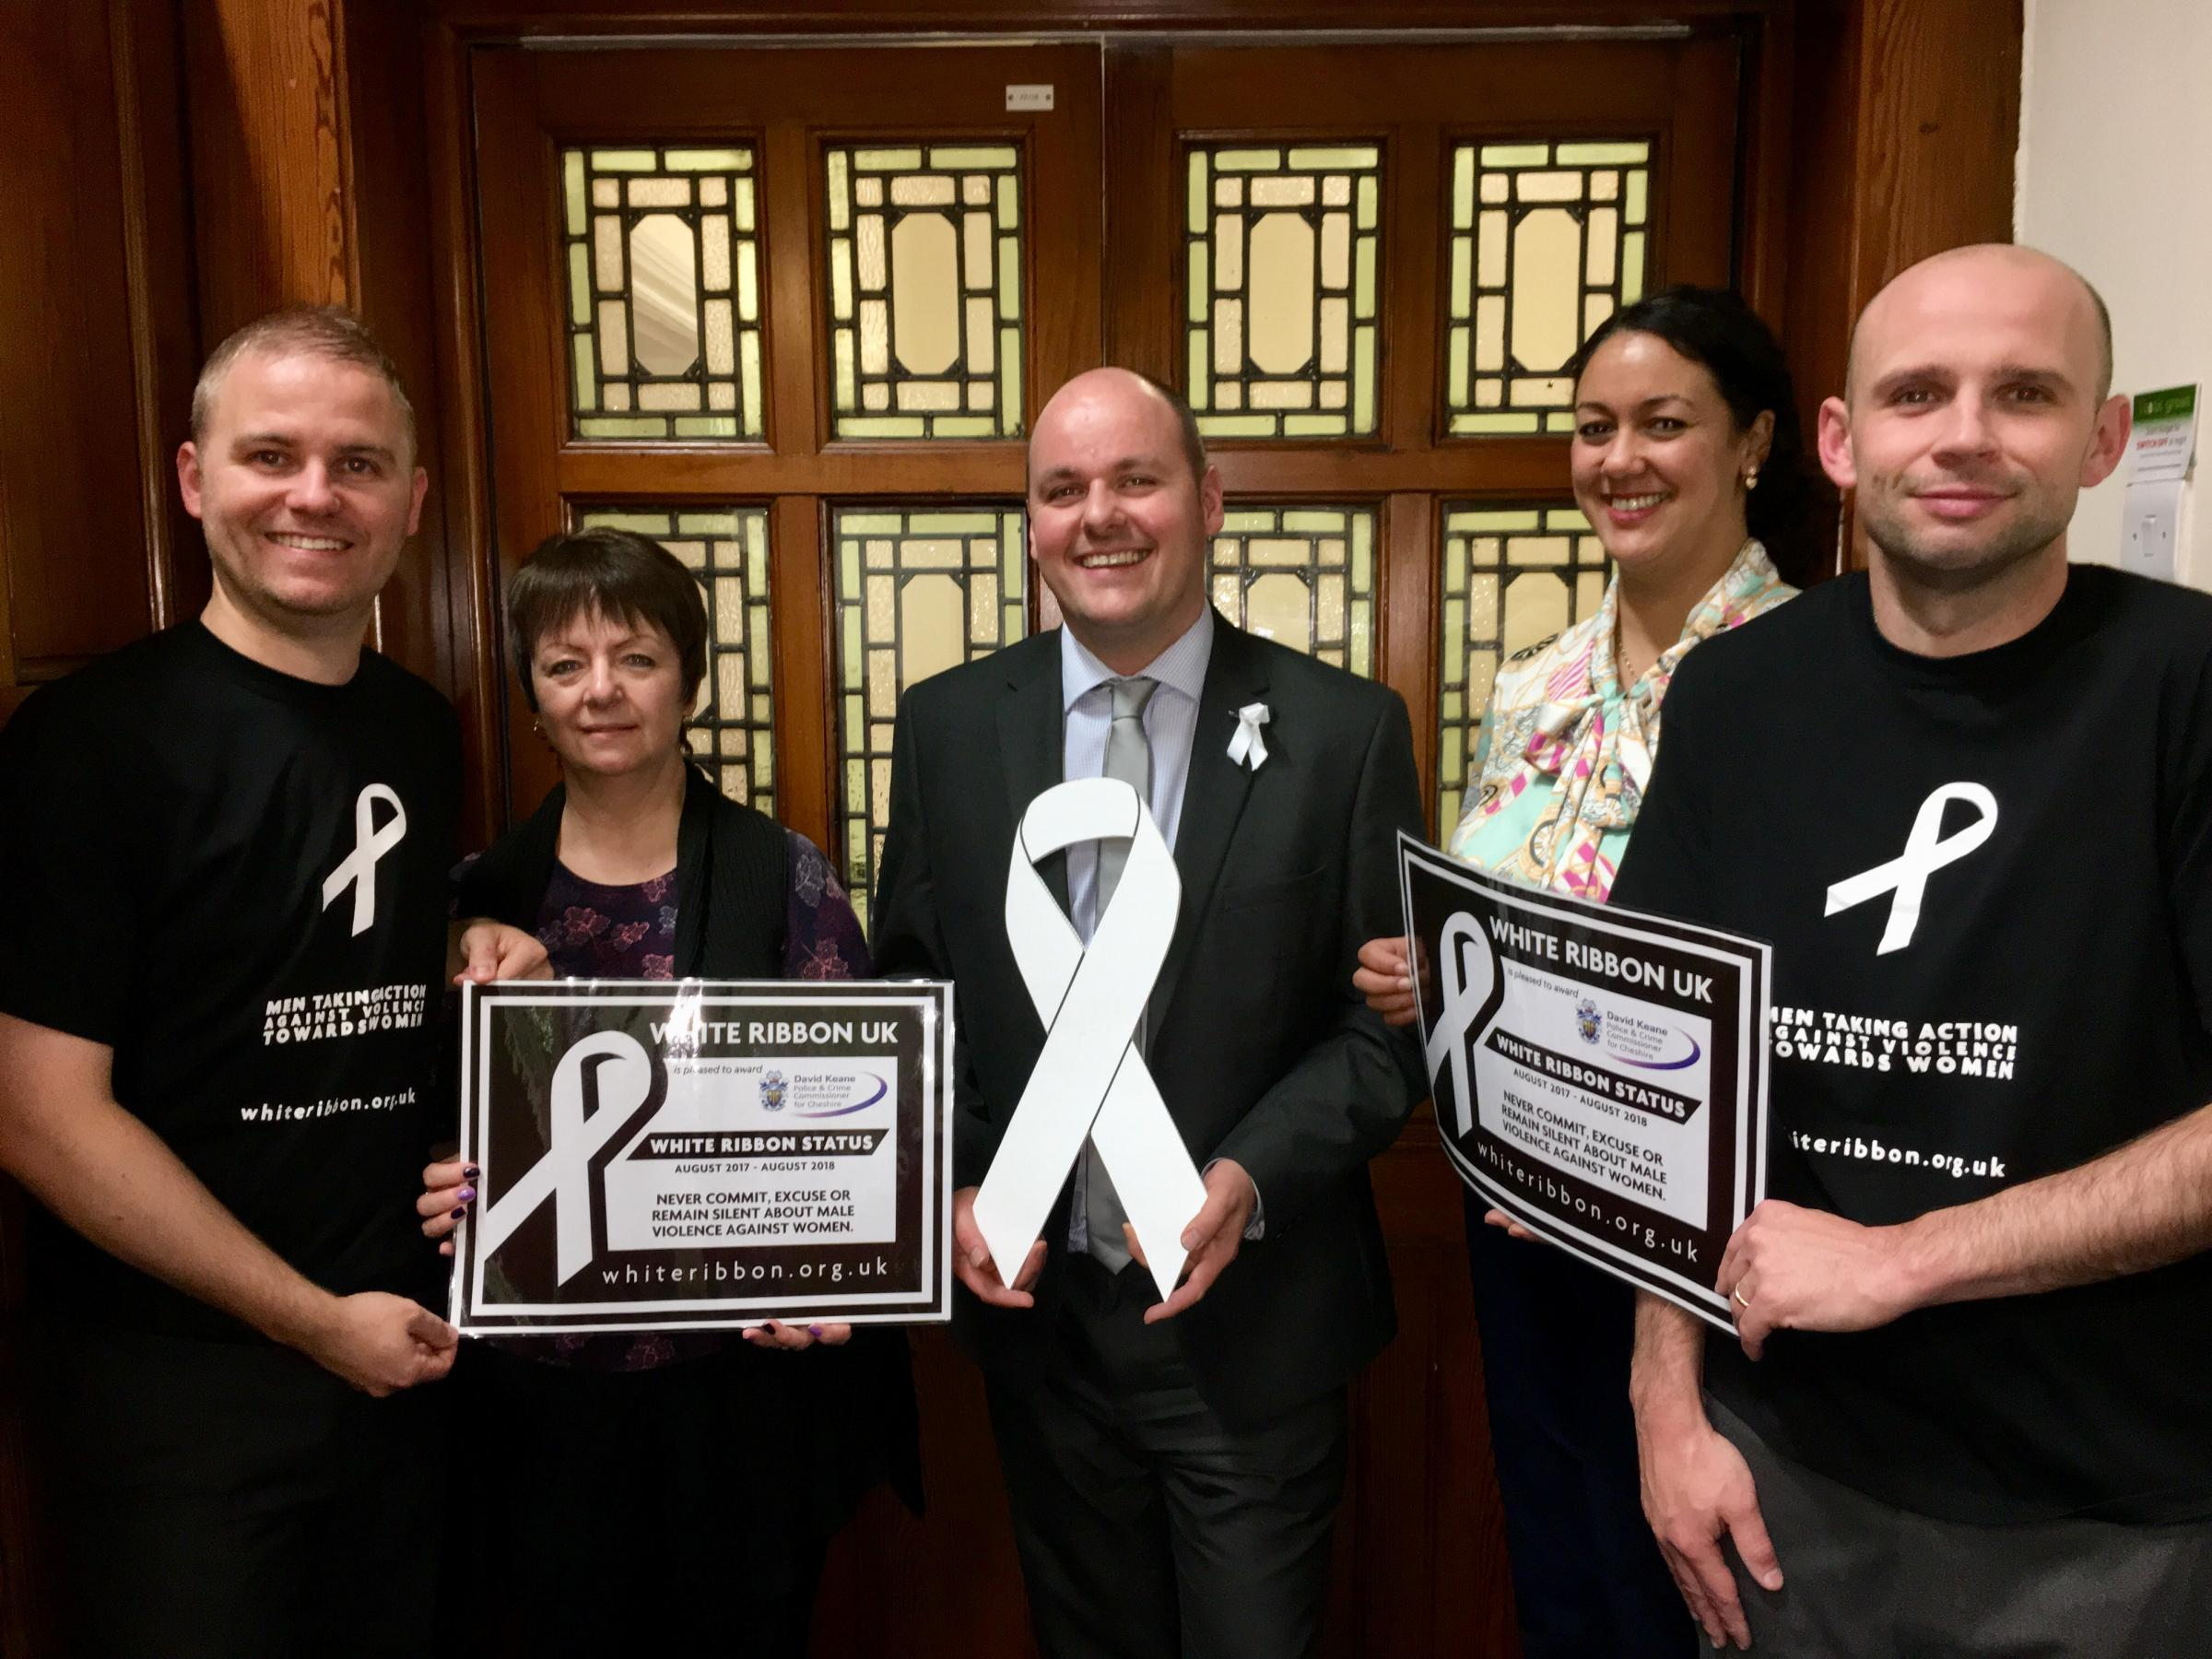 David Keane, Police and Crime Commissioner for Cheshire (centre) is now a White Ribbon Ambassador